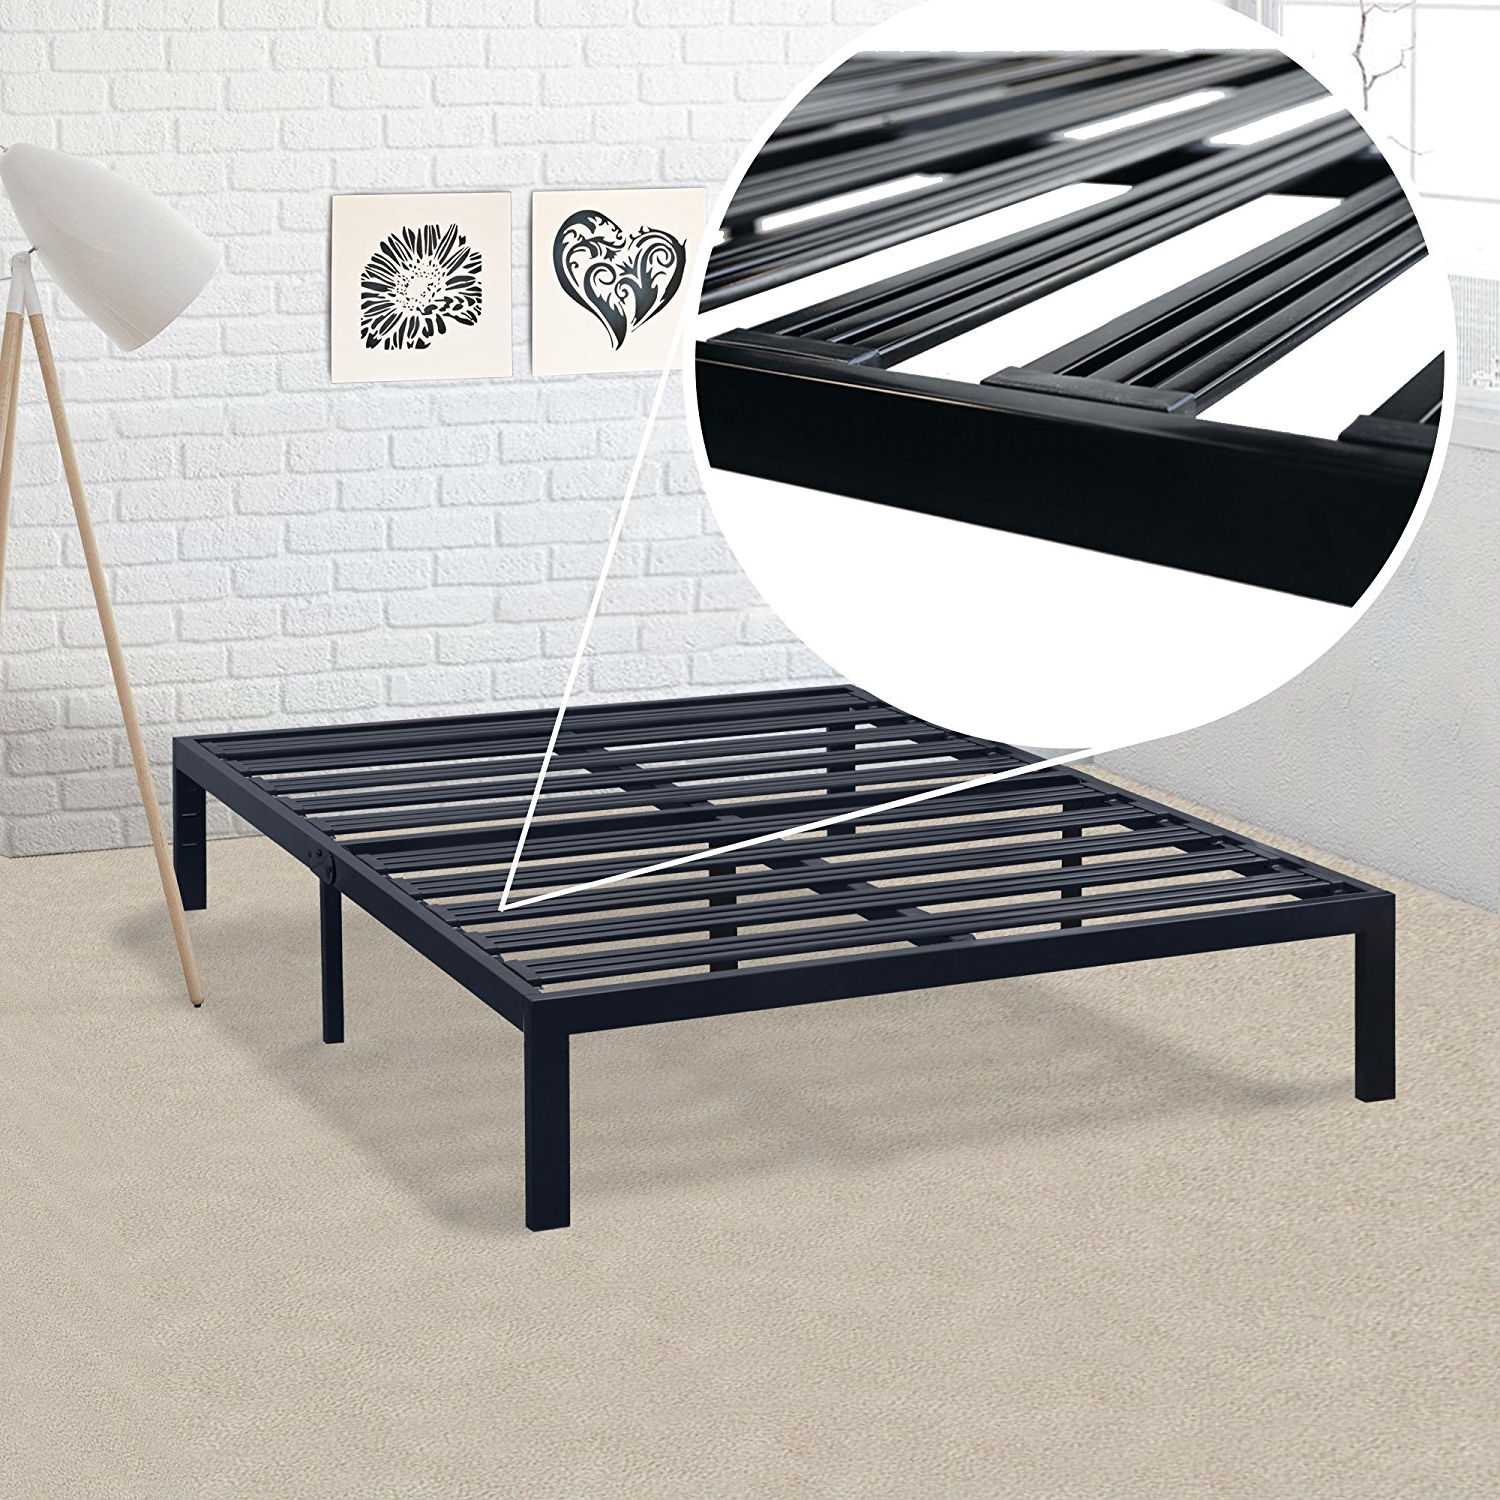 Queen size Metal Platform Bed Frame with Heavy Duty Steel Slats ...